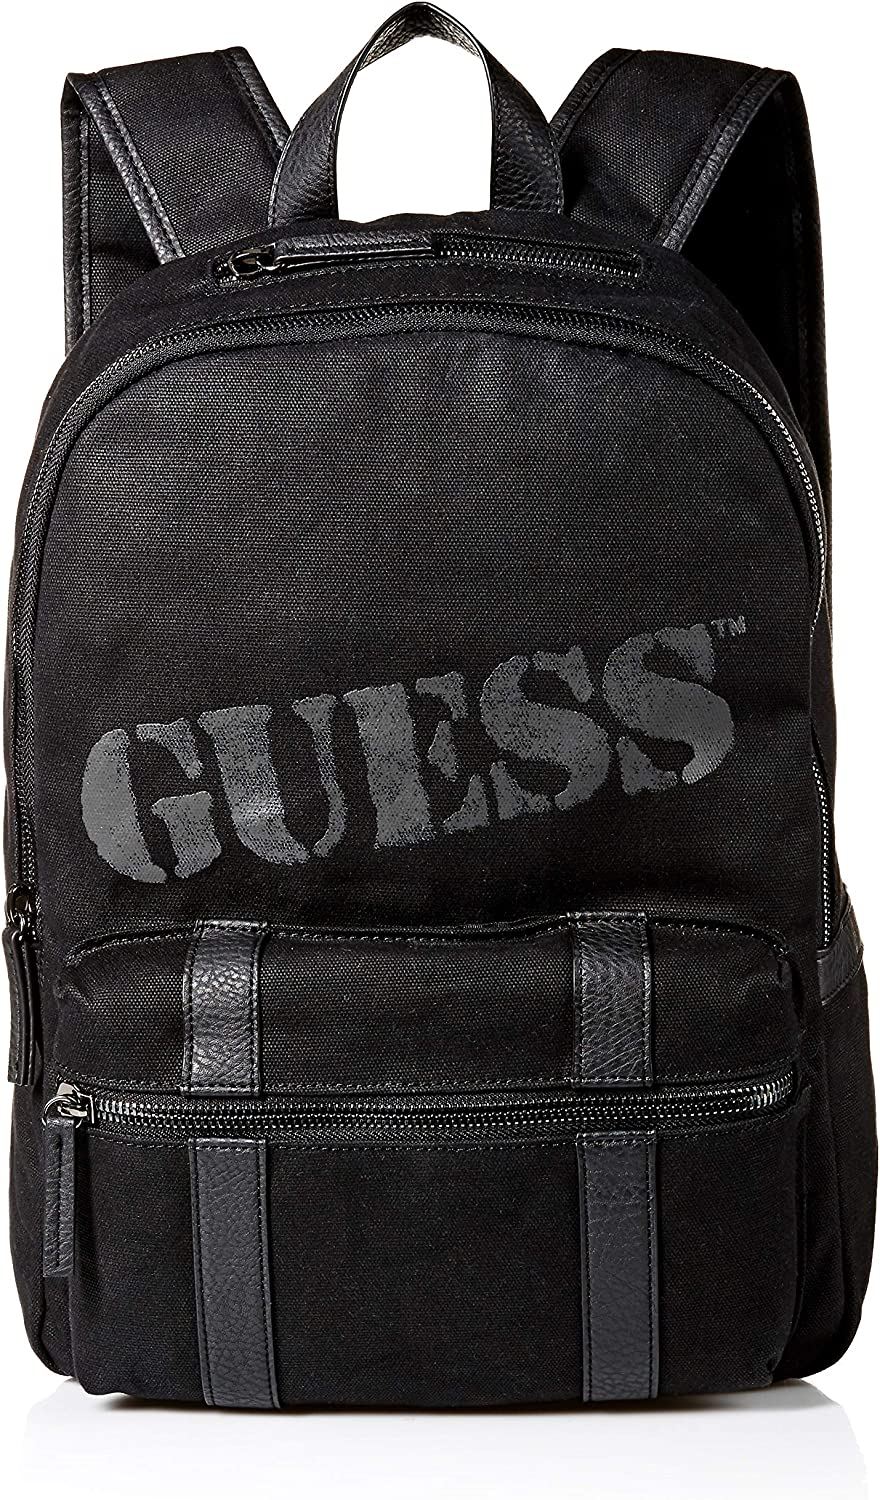 GUESS Outback Waxed Canvas Backpack